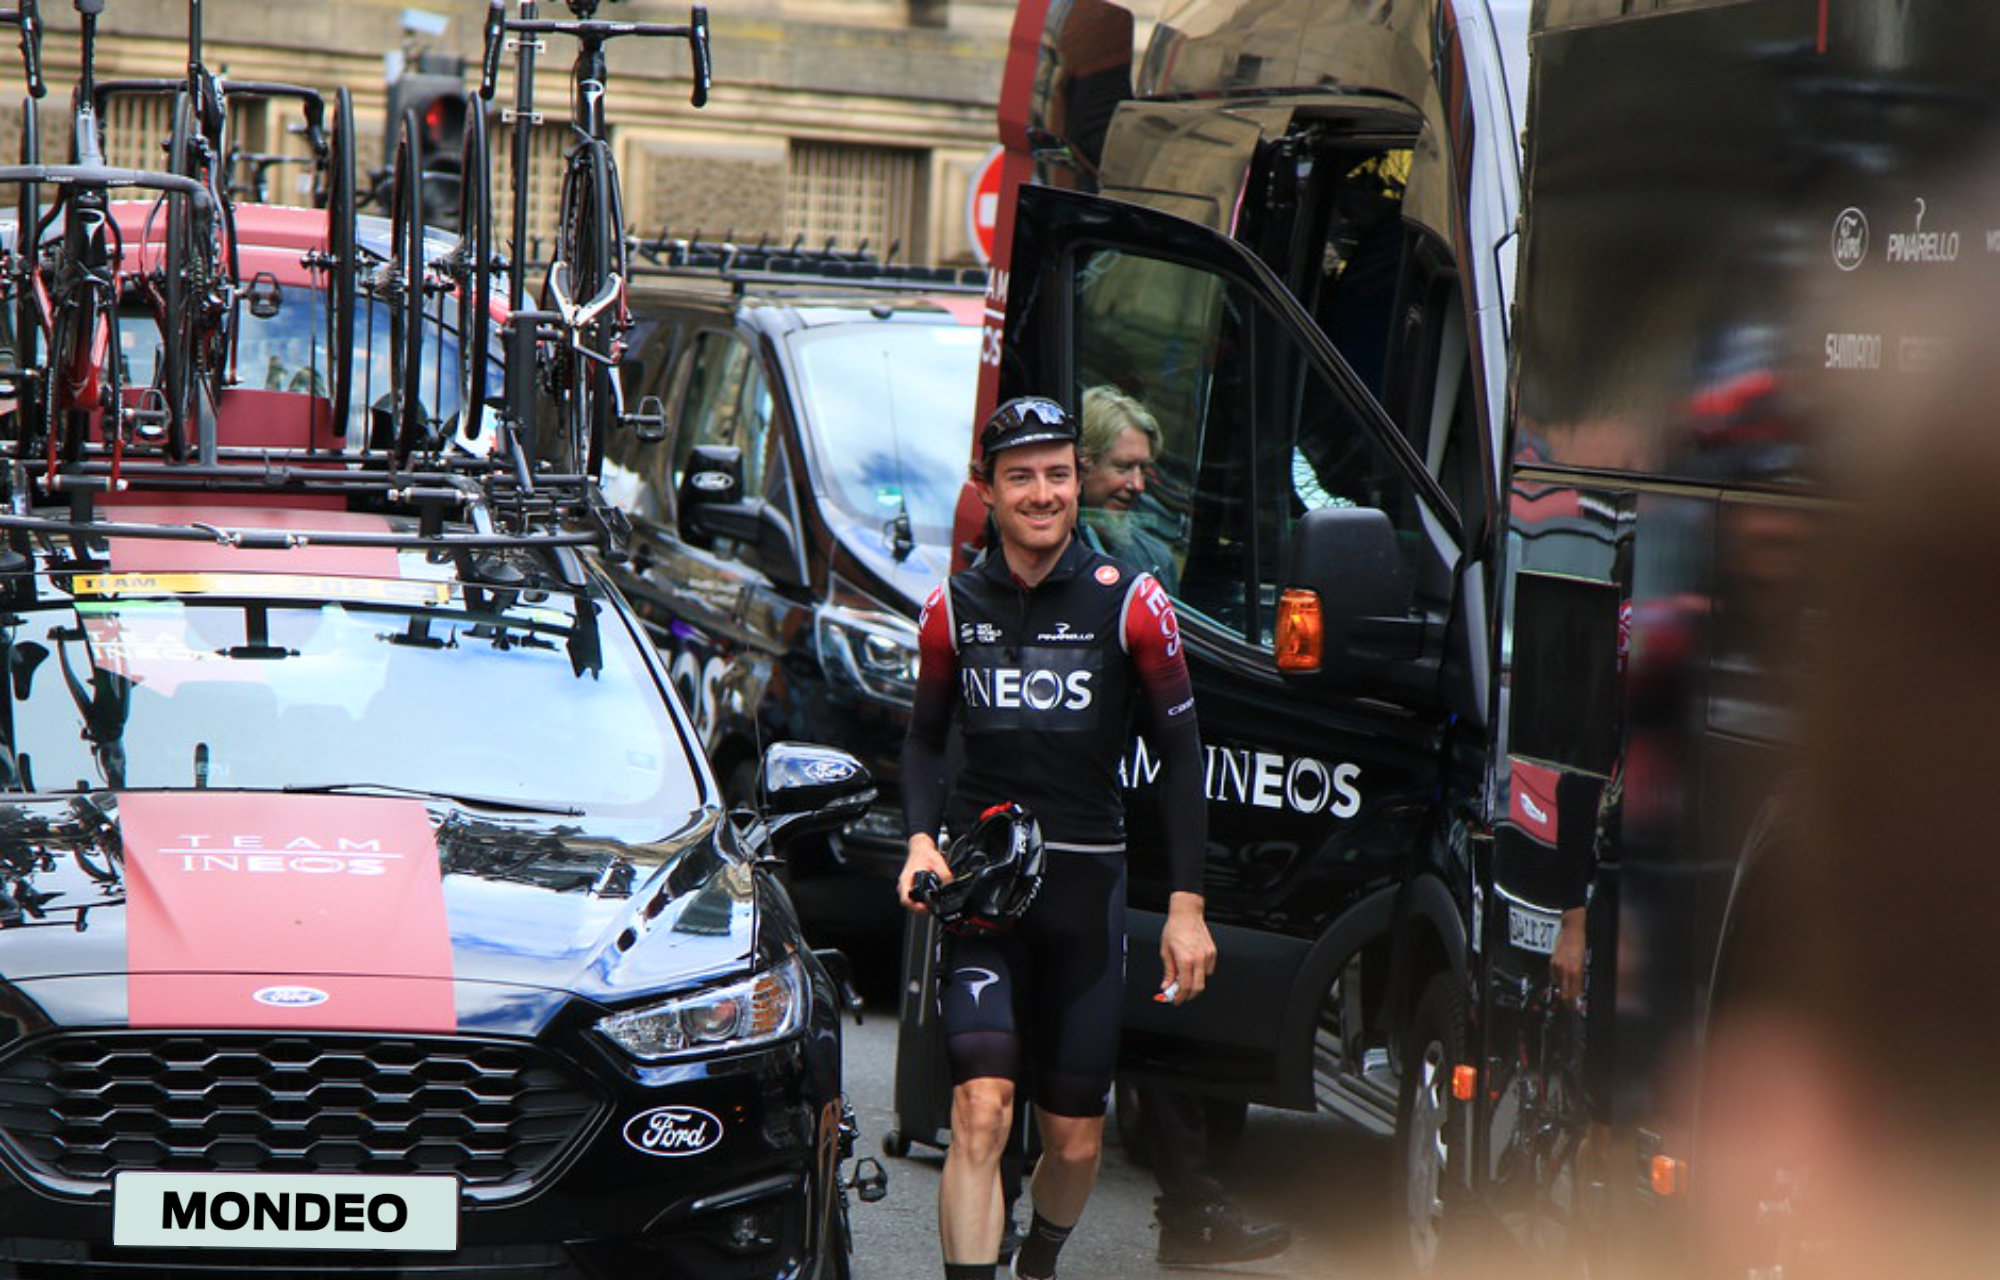 Ford & Team Ineos